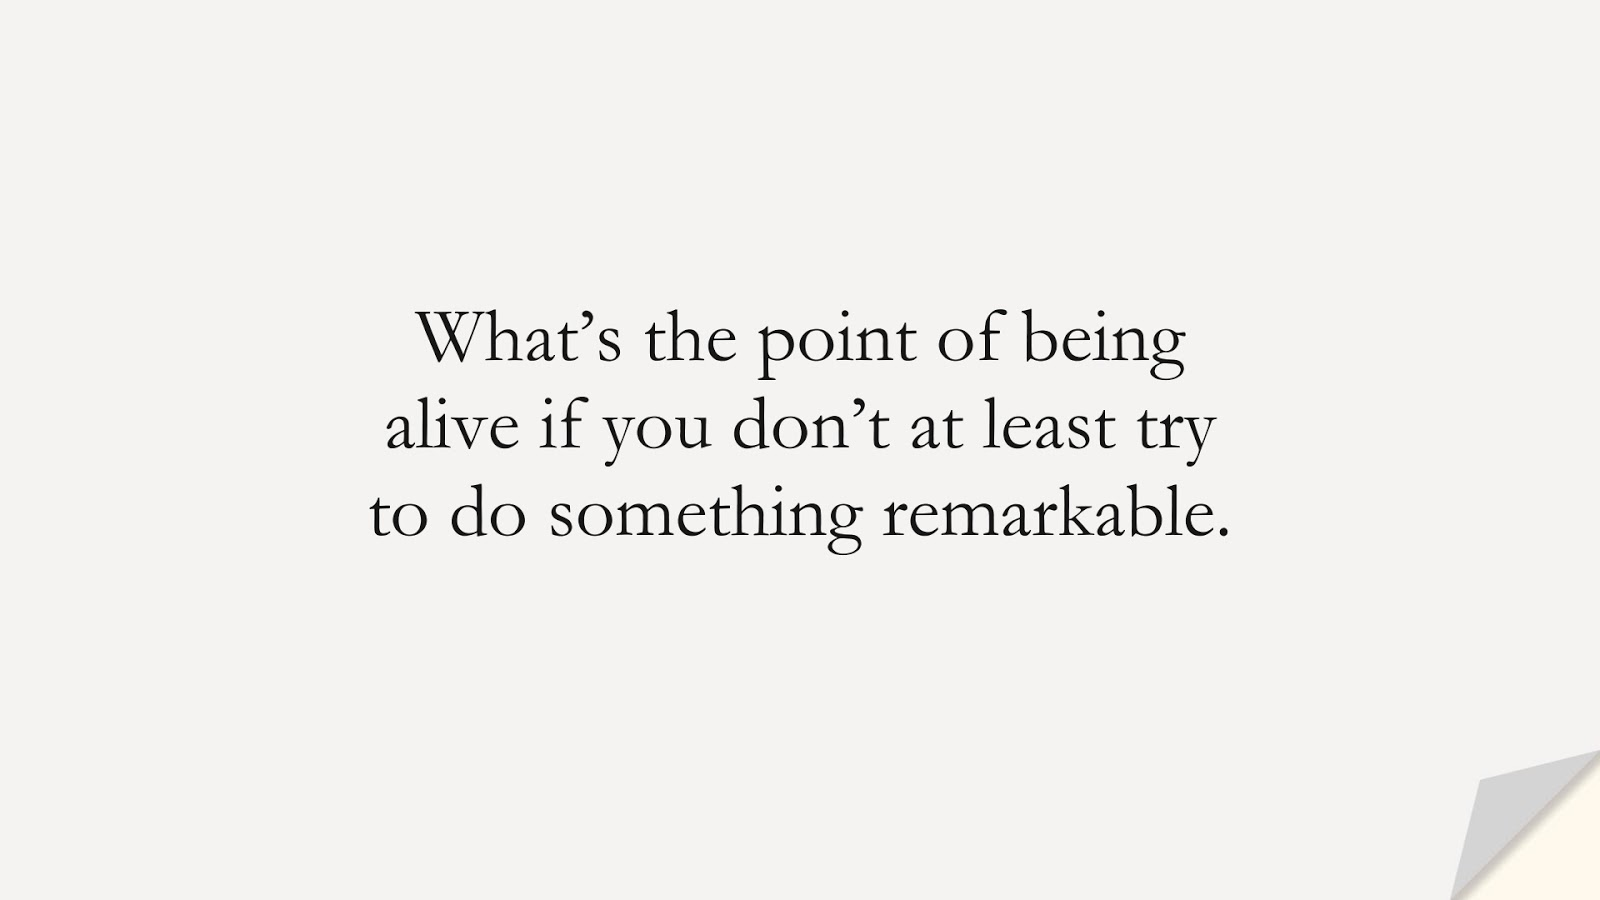 What's the point of being alive if you don't at least try to do something remarkable.FALSE